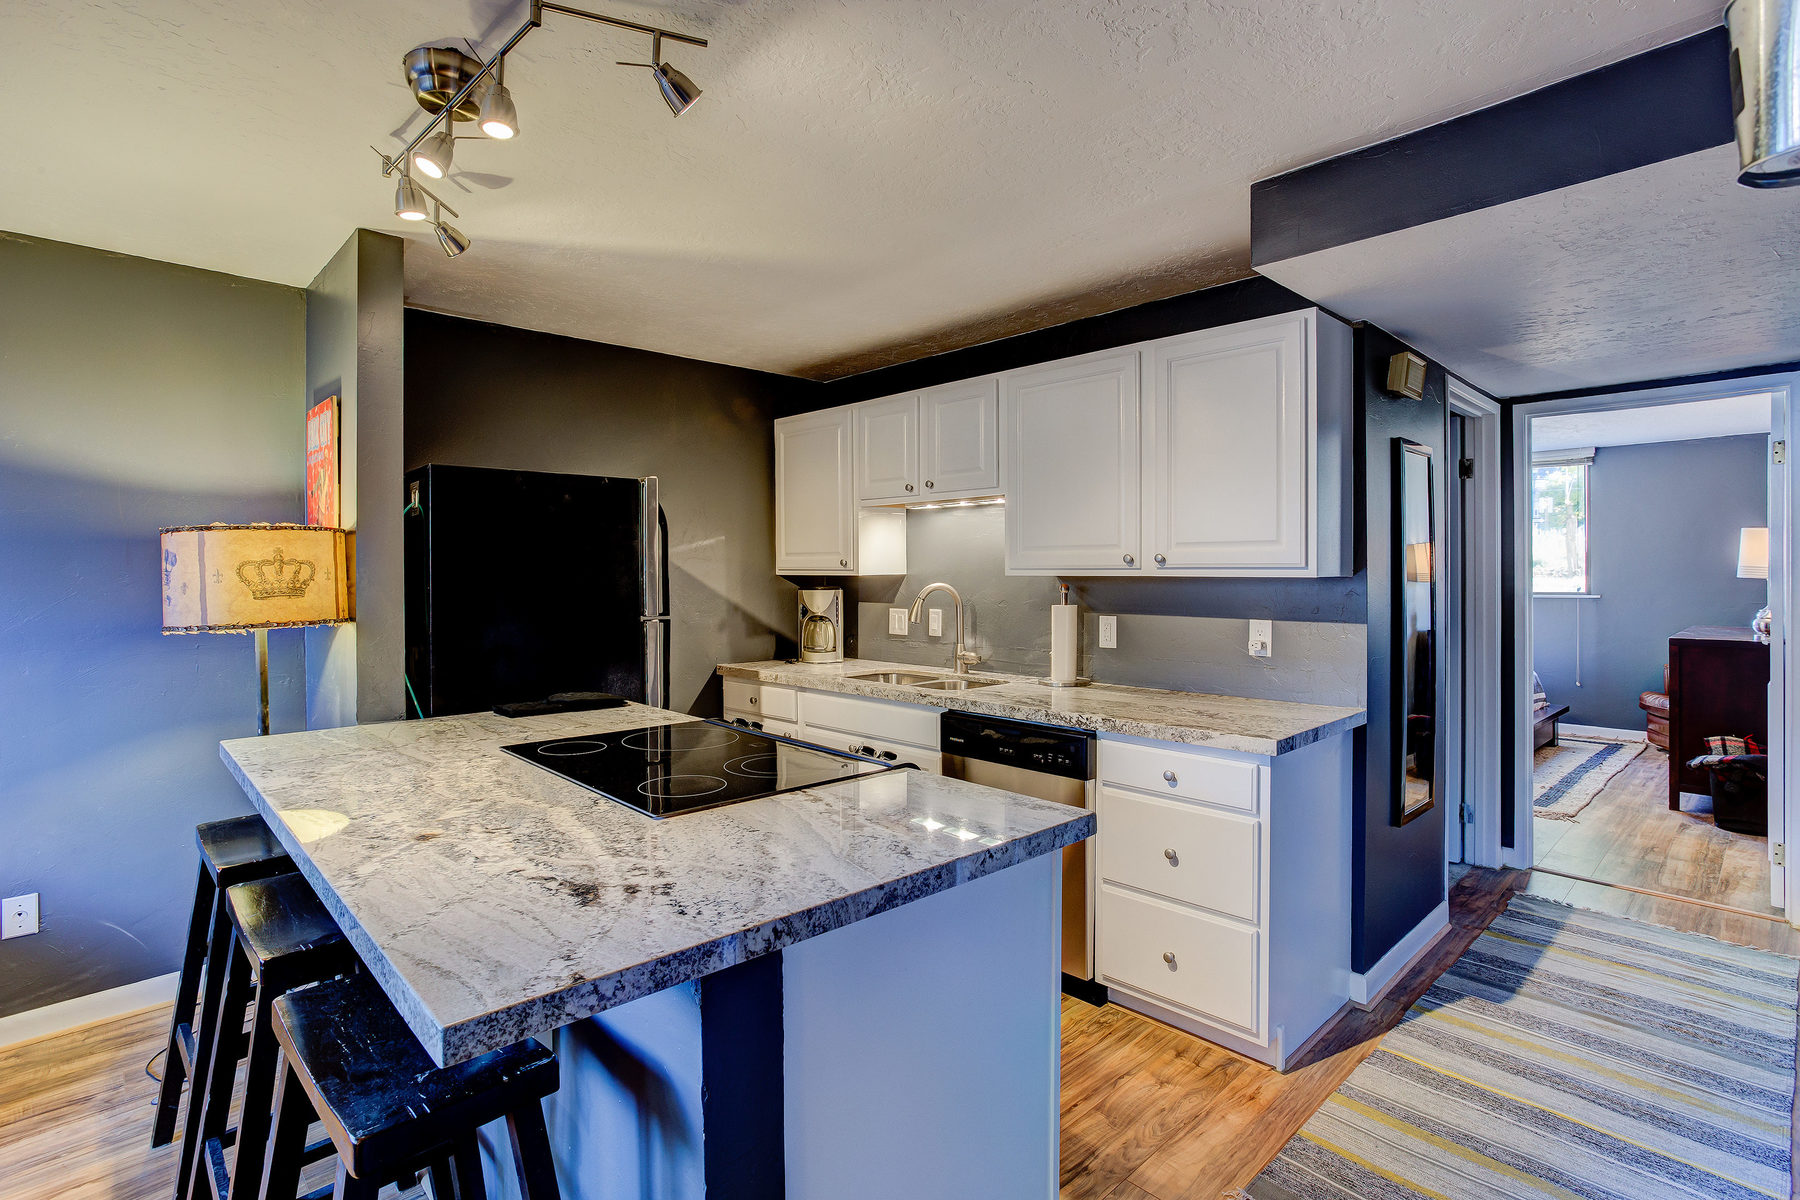 Condominium for Sale at Delightful Snow Country Condo with Resort Views 1150 Deer Valley Dr #1046 Park City, Utah, 84060 United States